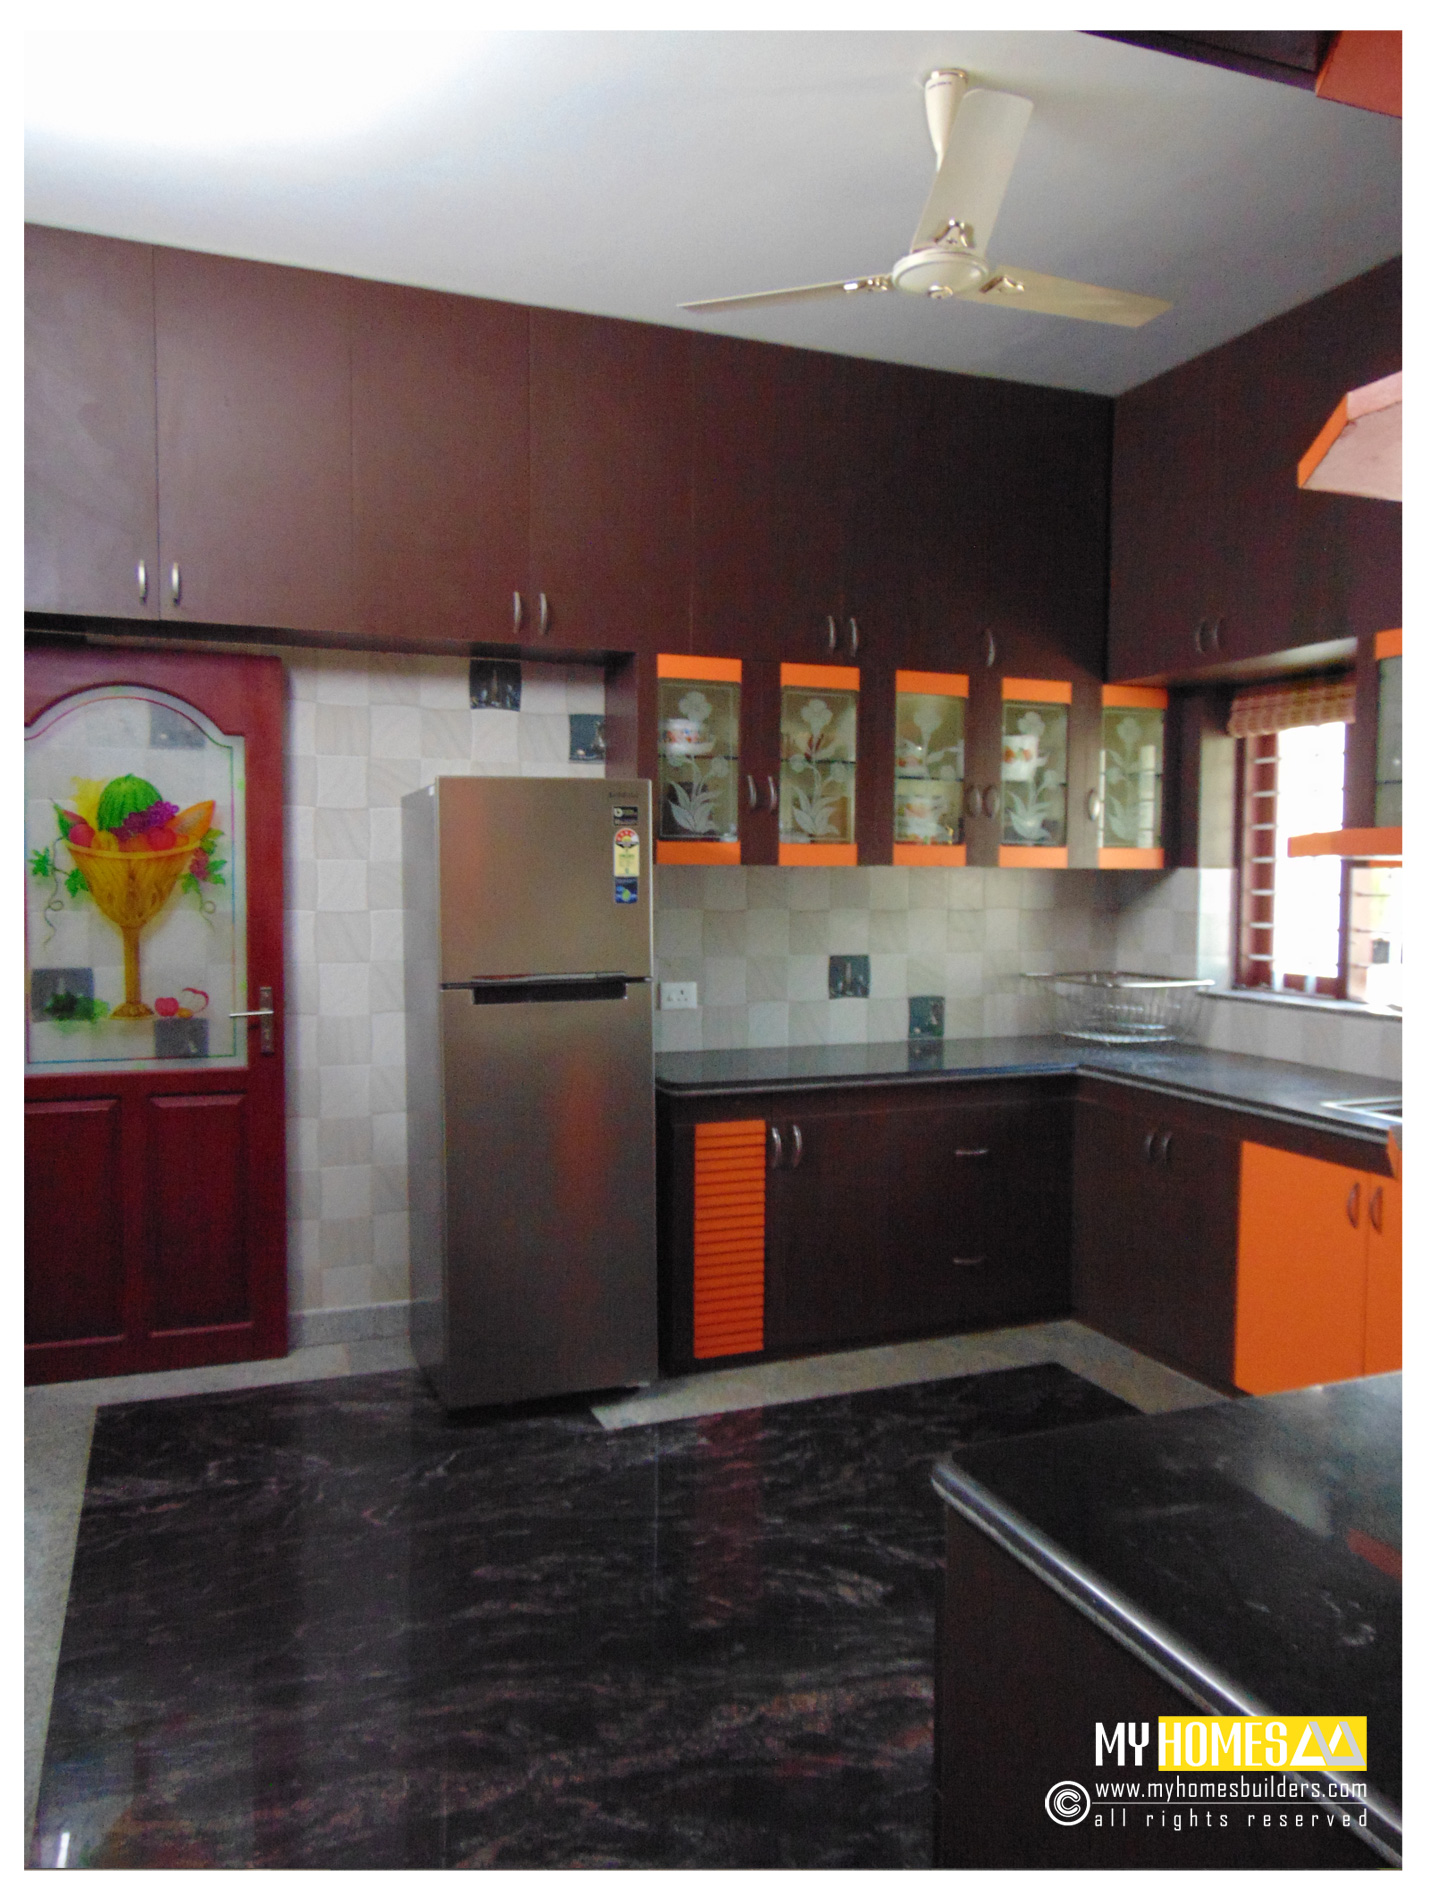 Kerala Kitchen Designs Idea In Modular Style For House In